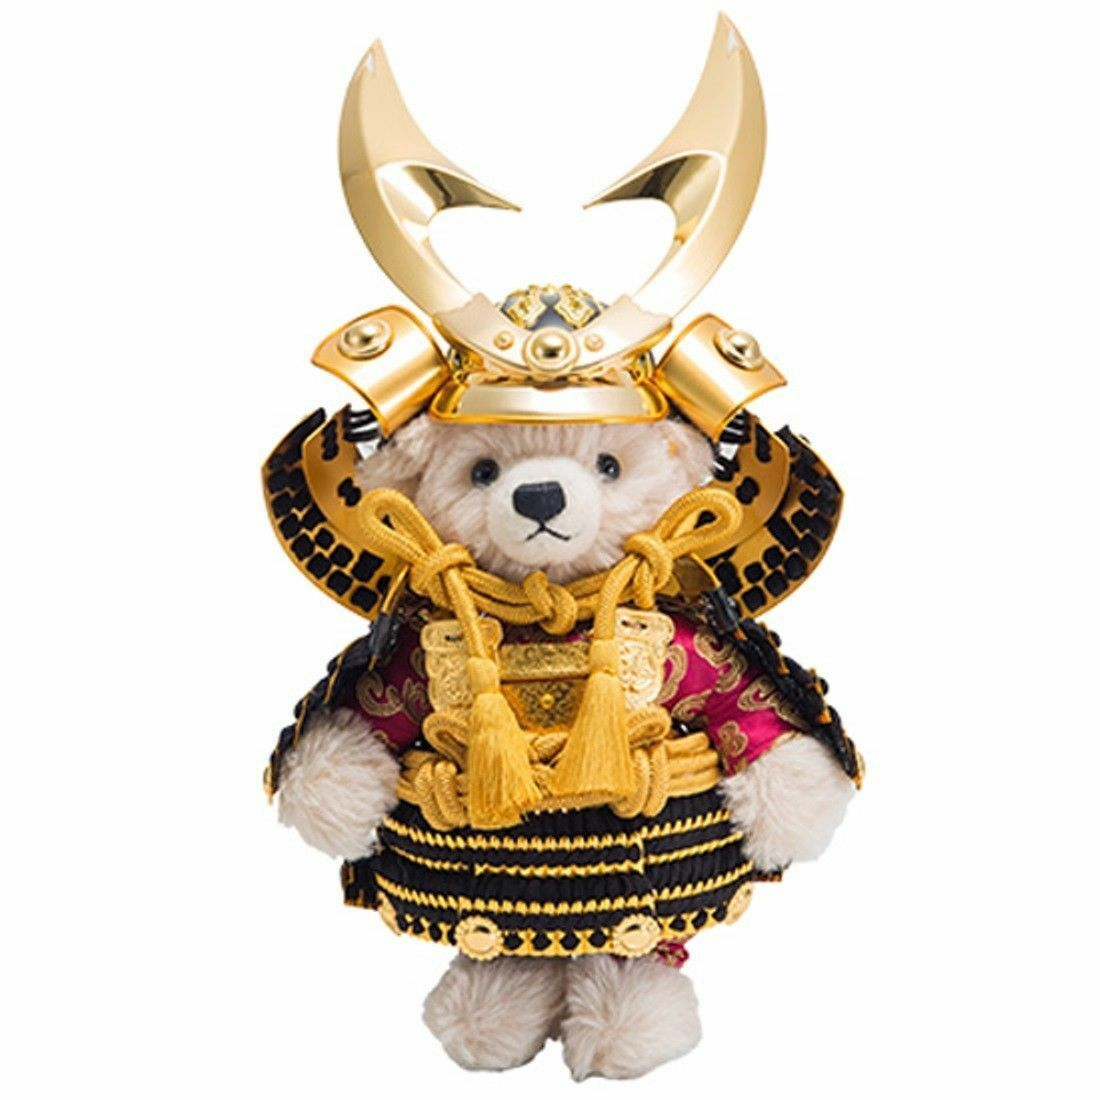 NEW Steiff SAMURAI Teddy Bear Kabuto 2019 500pcs Japan Limited Helmet and Armor